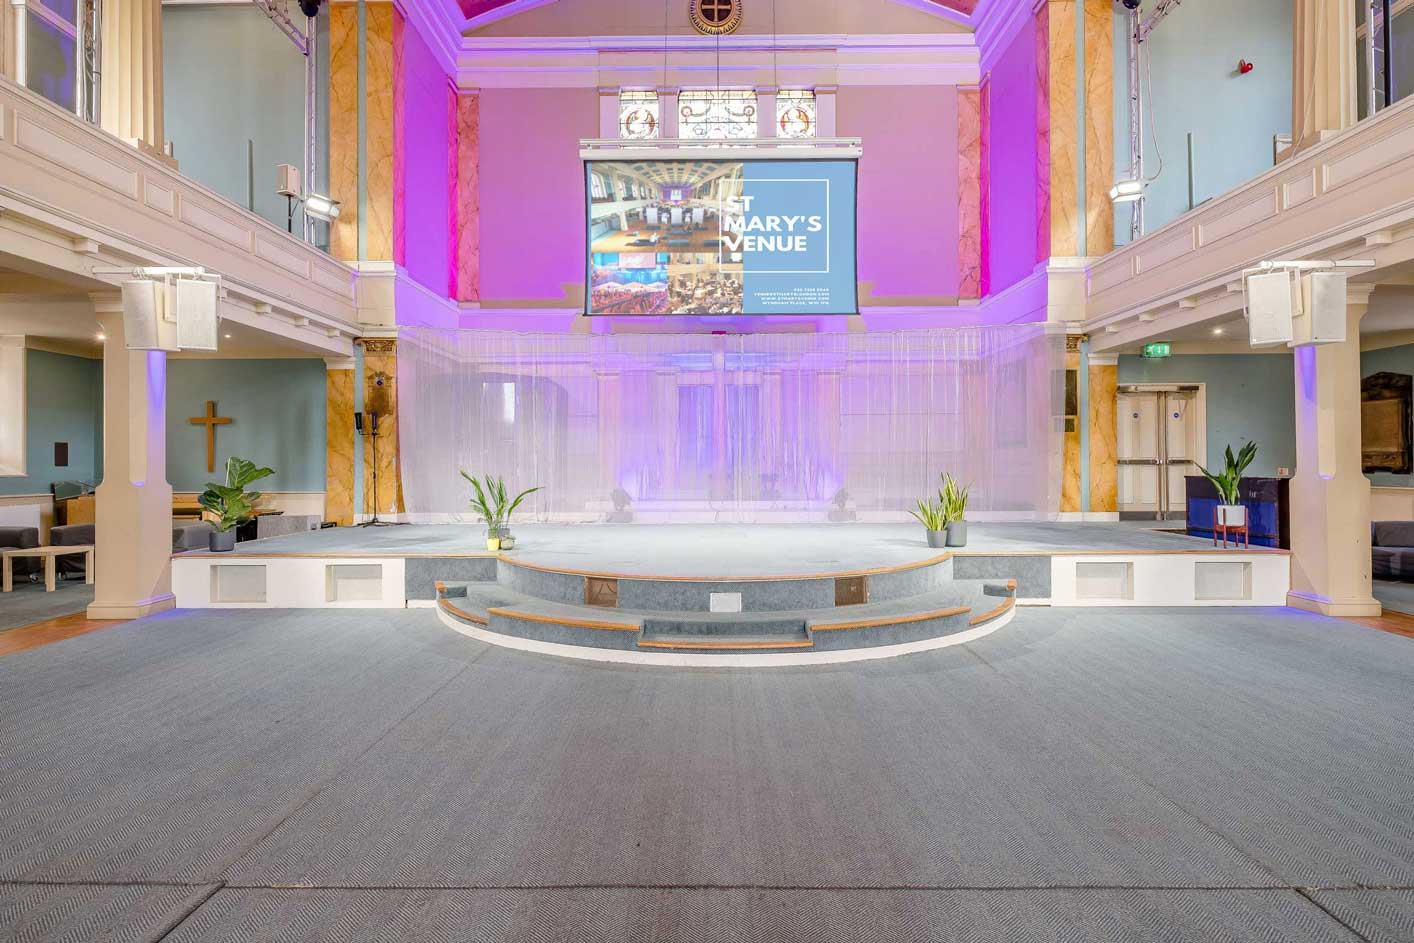 image of the main auditorium at St Mary's Venue Hire with the main stage and alcove lighting